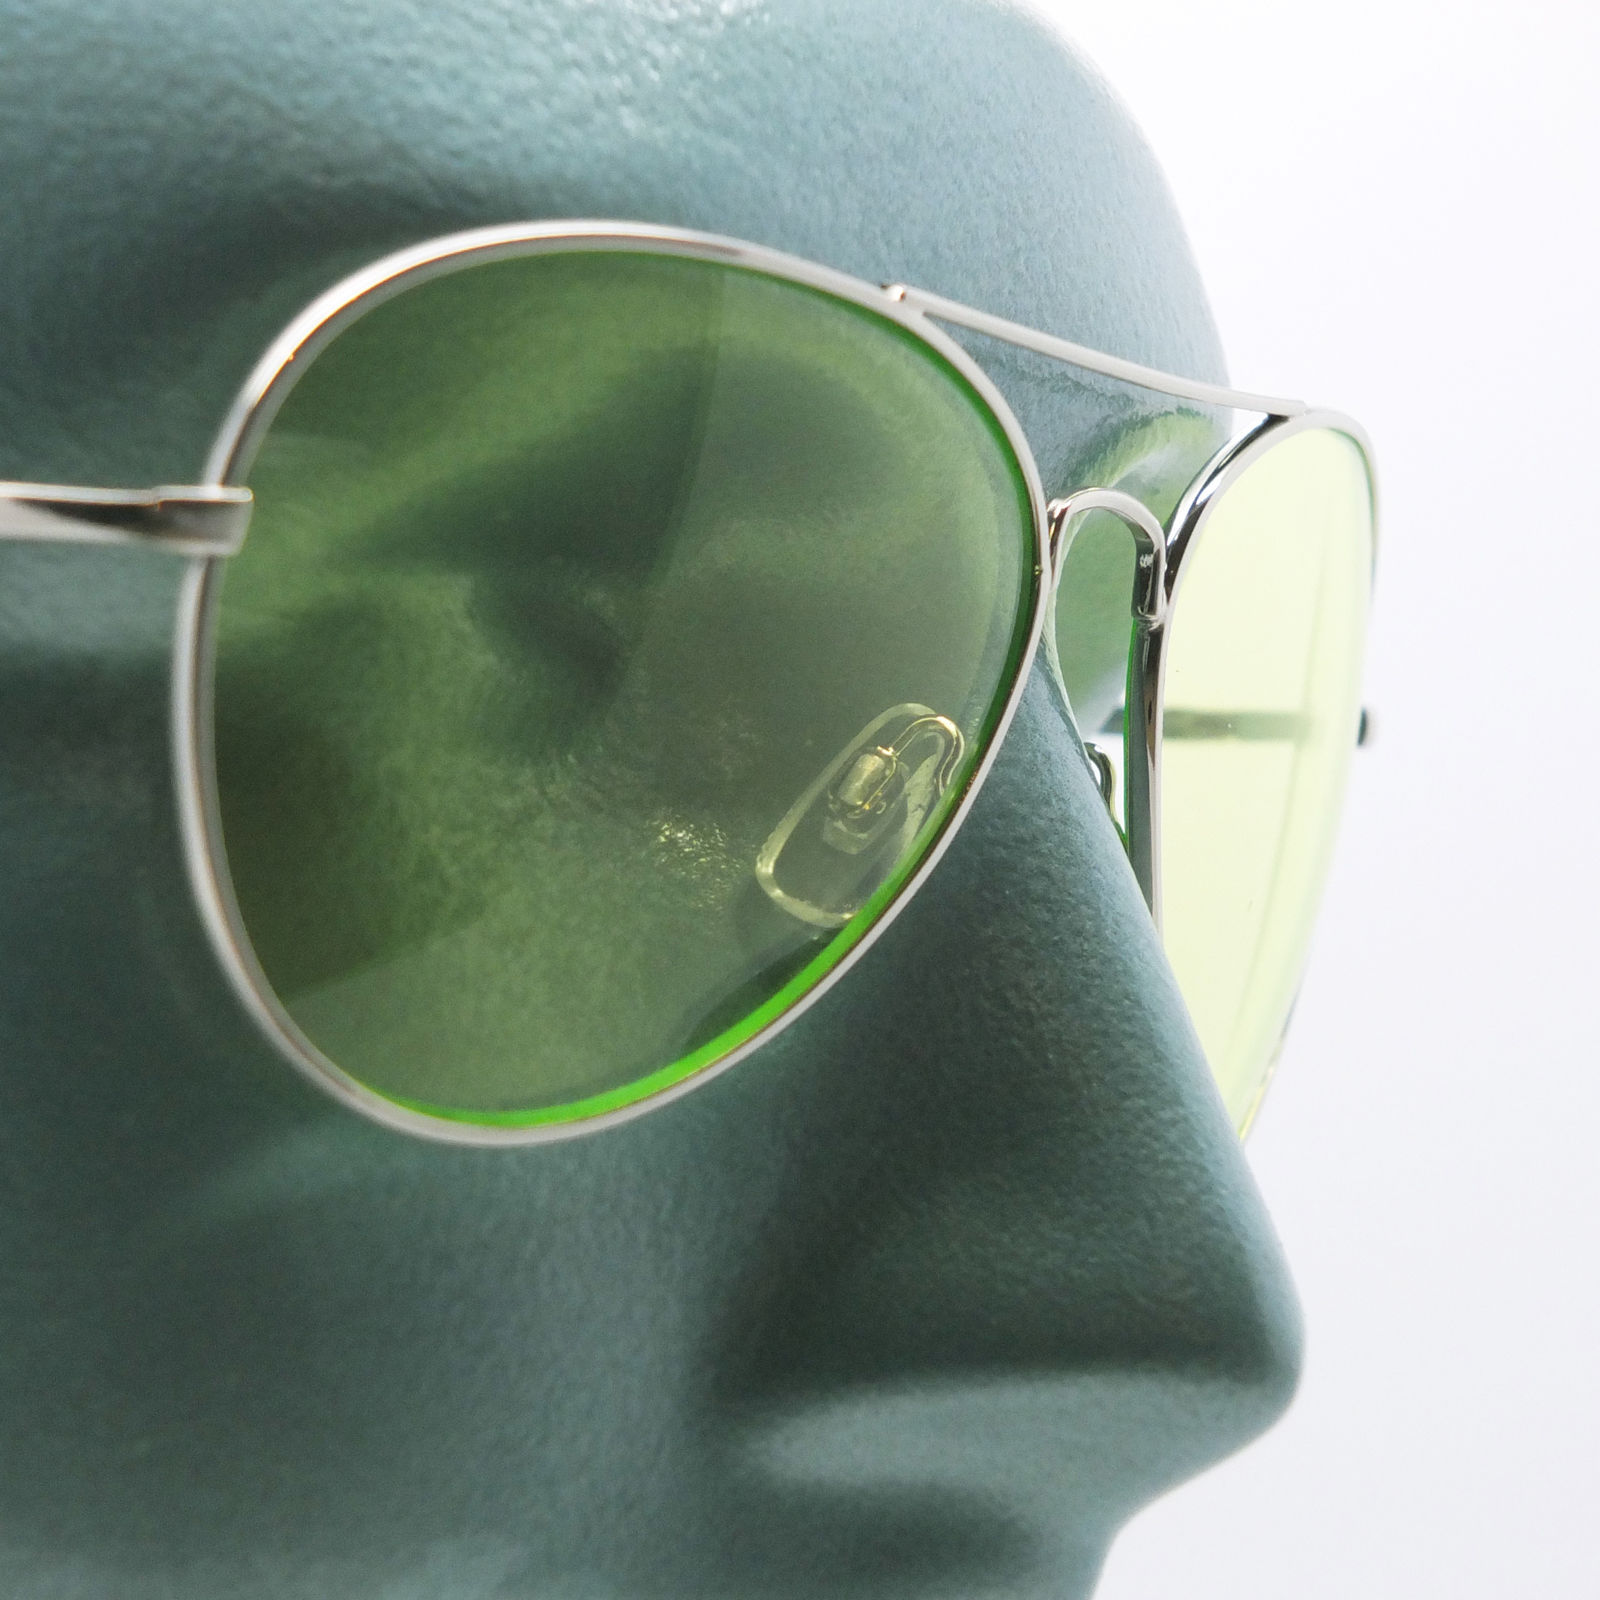 Primary image for Uber Rock Cool Colored Lime Green Lens Aviator Sunglasses Tint Shades